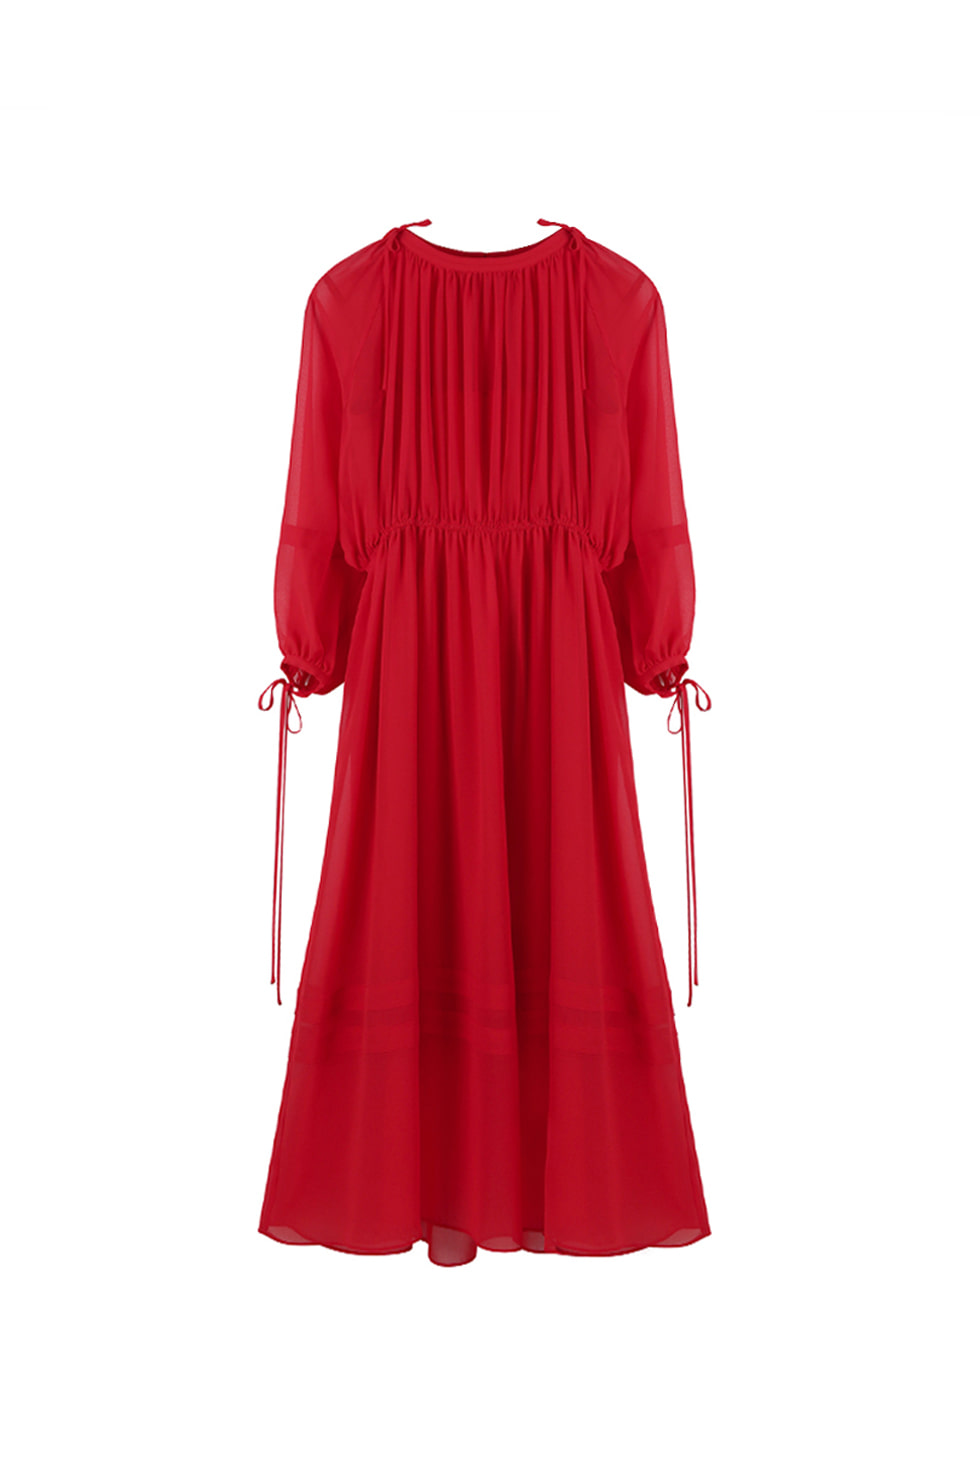 CHIFFON LONG DRESS - RED